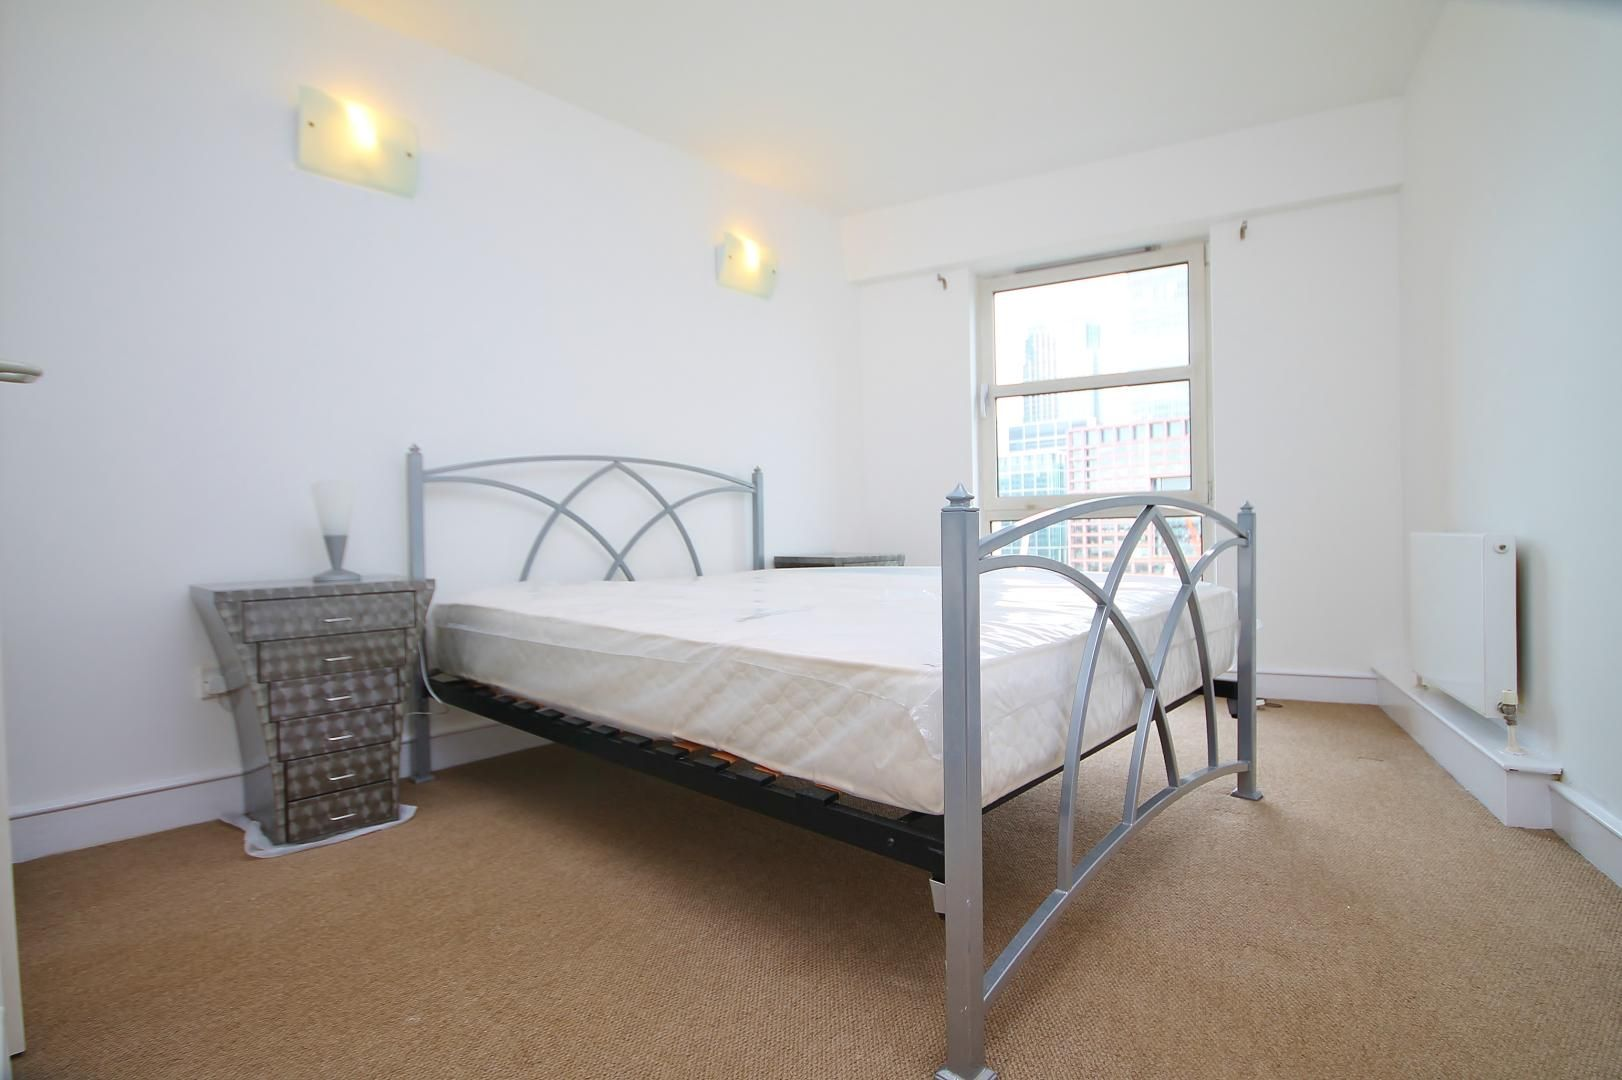 2 bed flat to rent in Westferry Road, E14